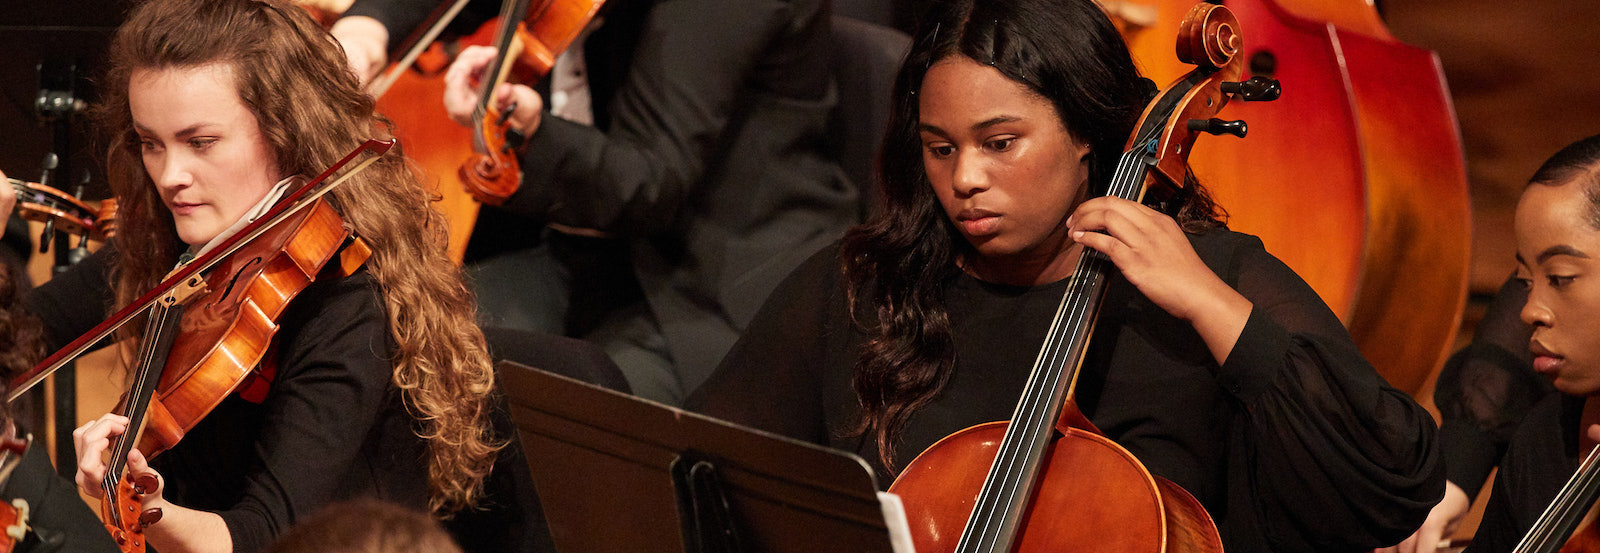 Students playing viola and cello in the orchestra.